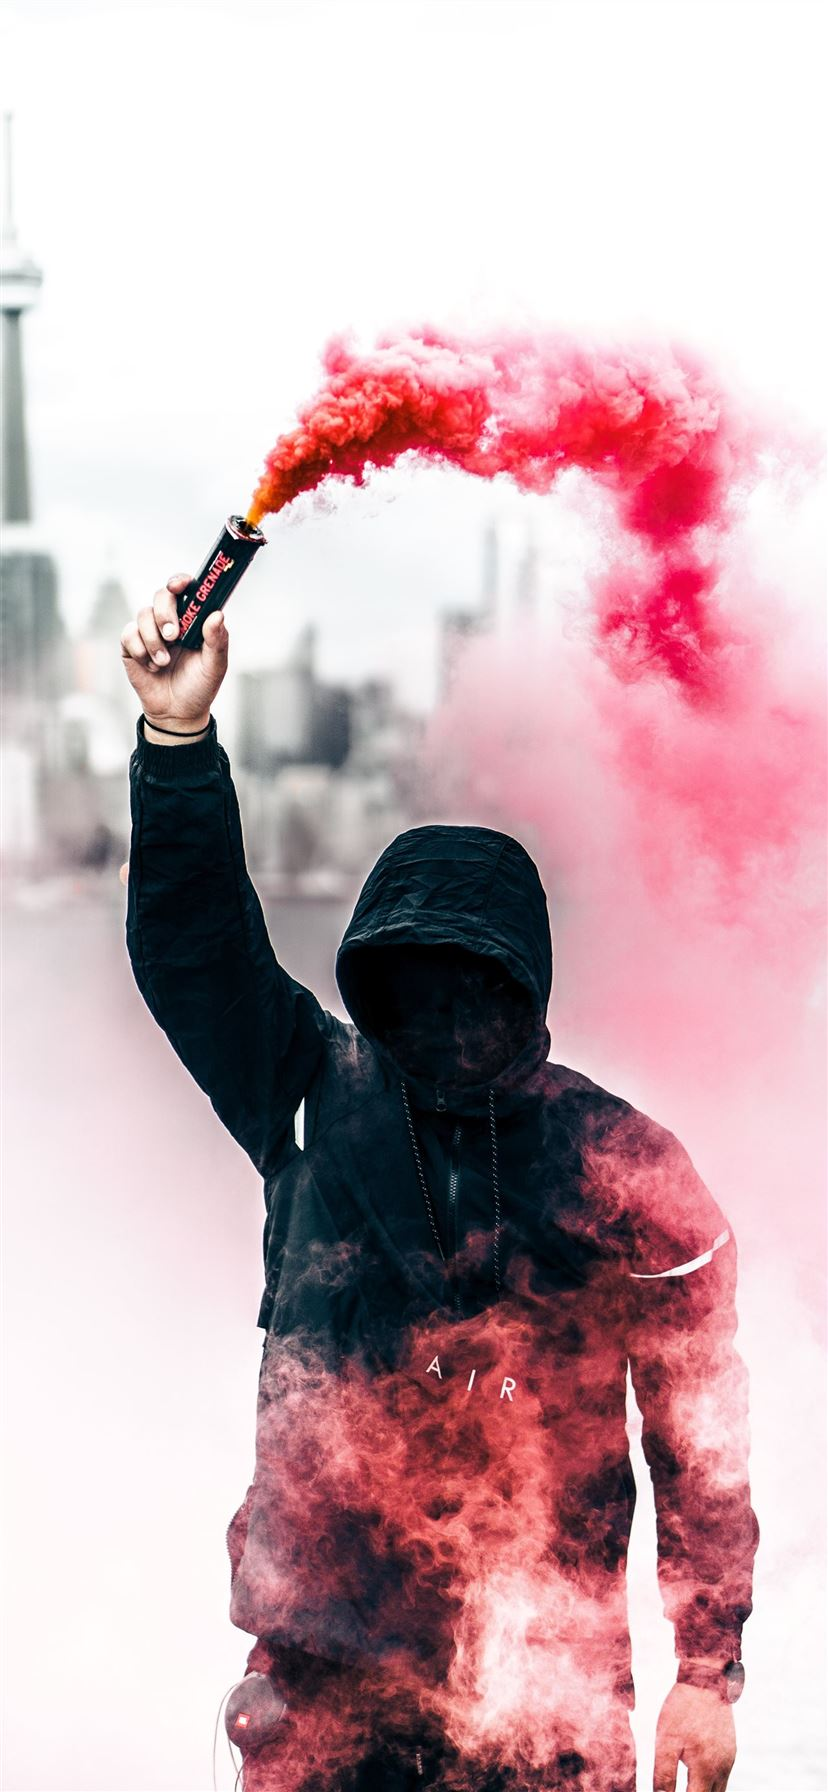 person wearing black and red hoodie holding smoke ... iPhone 11 wallpaper